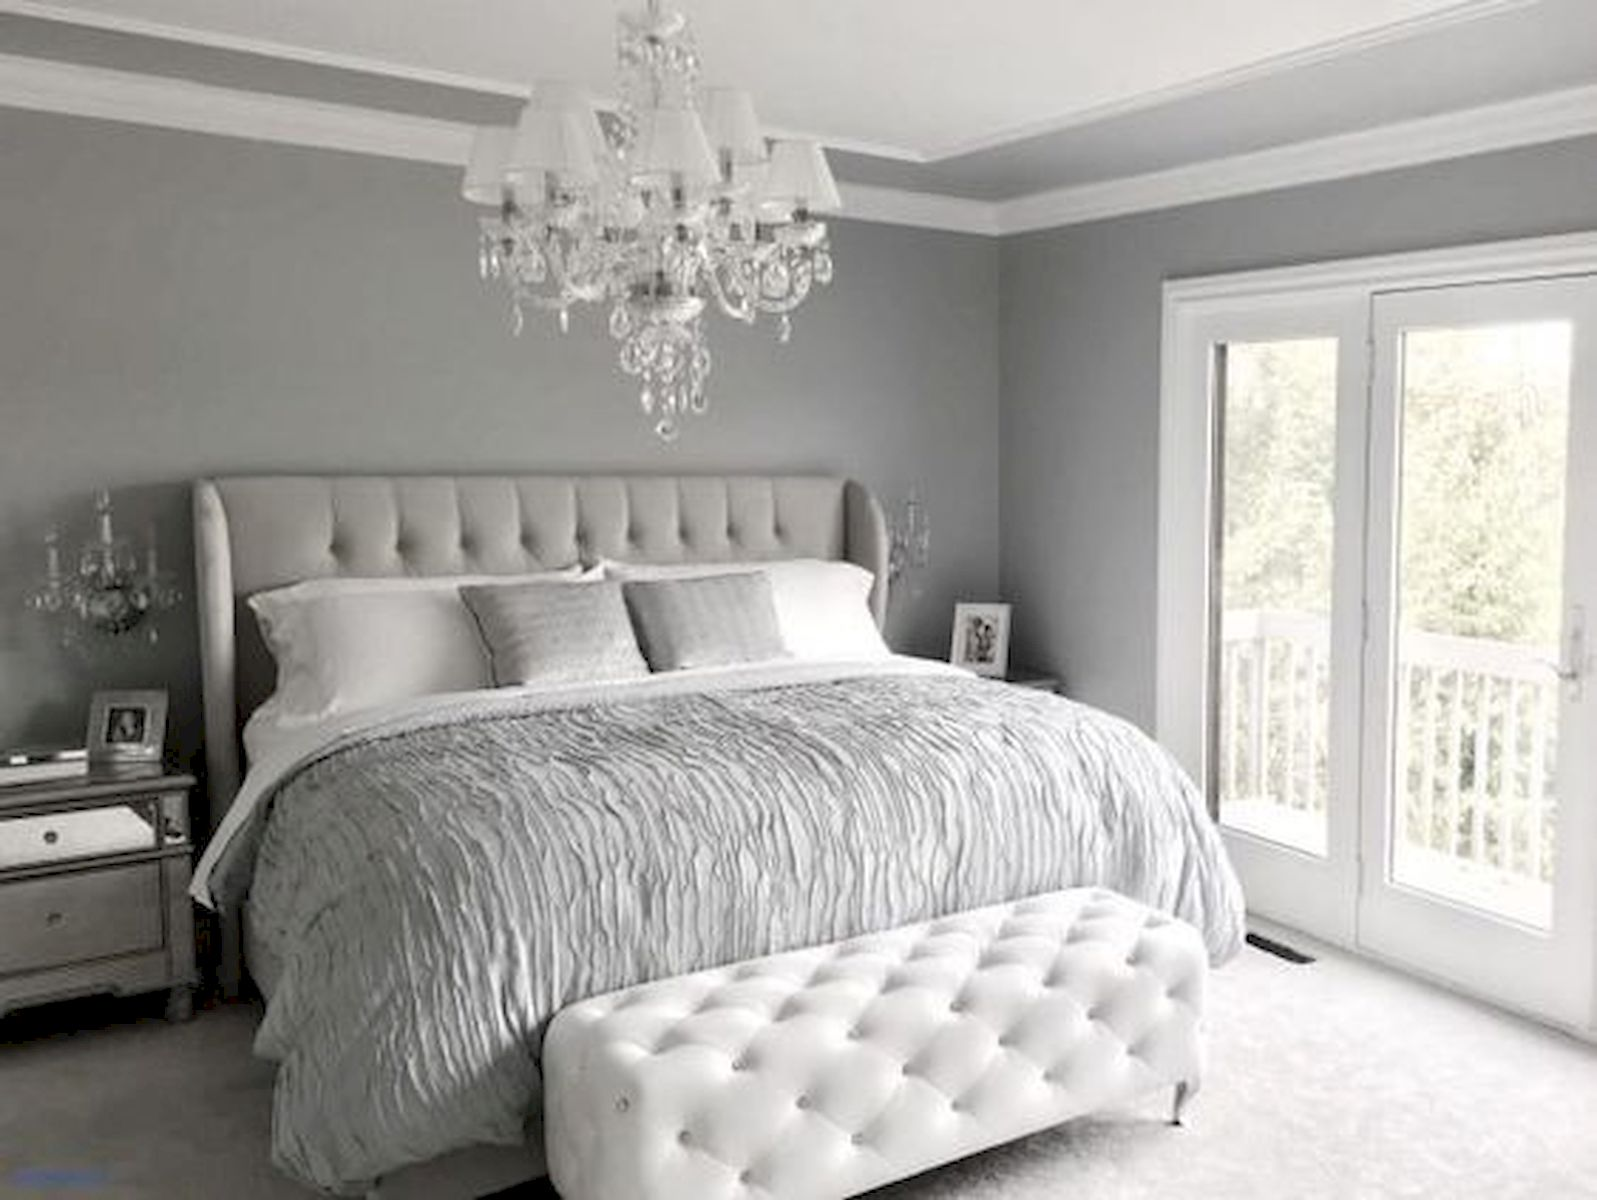 60 Beautiful Bedroom Decor And Design Ideas (1)